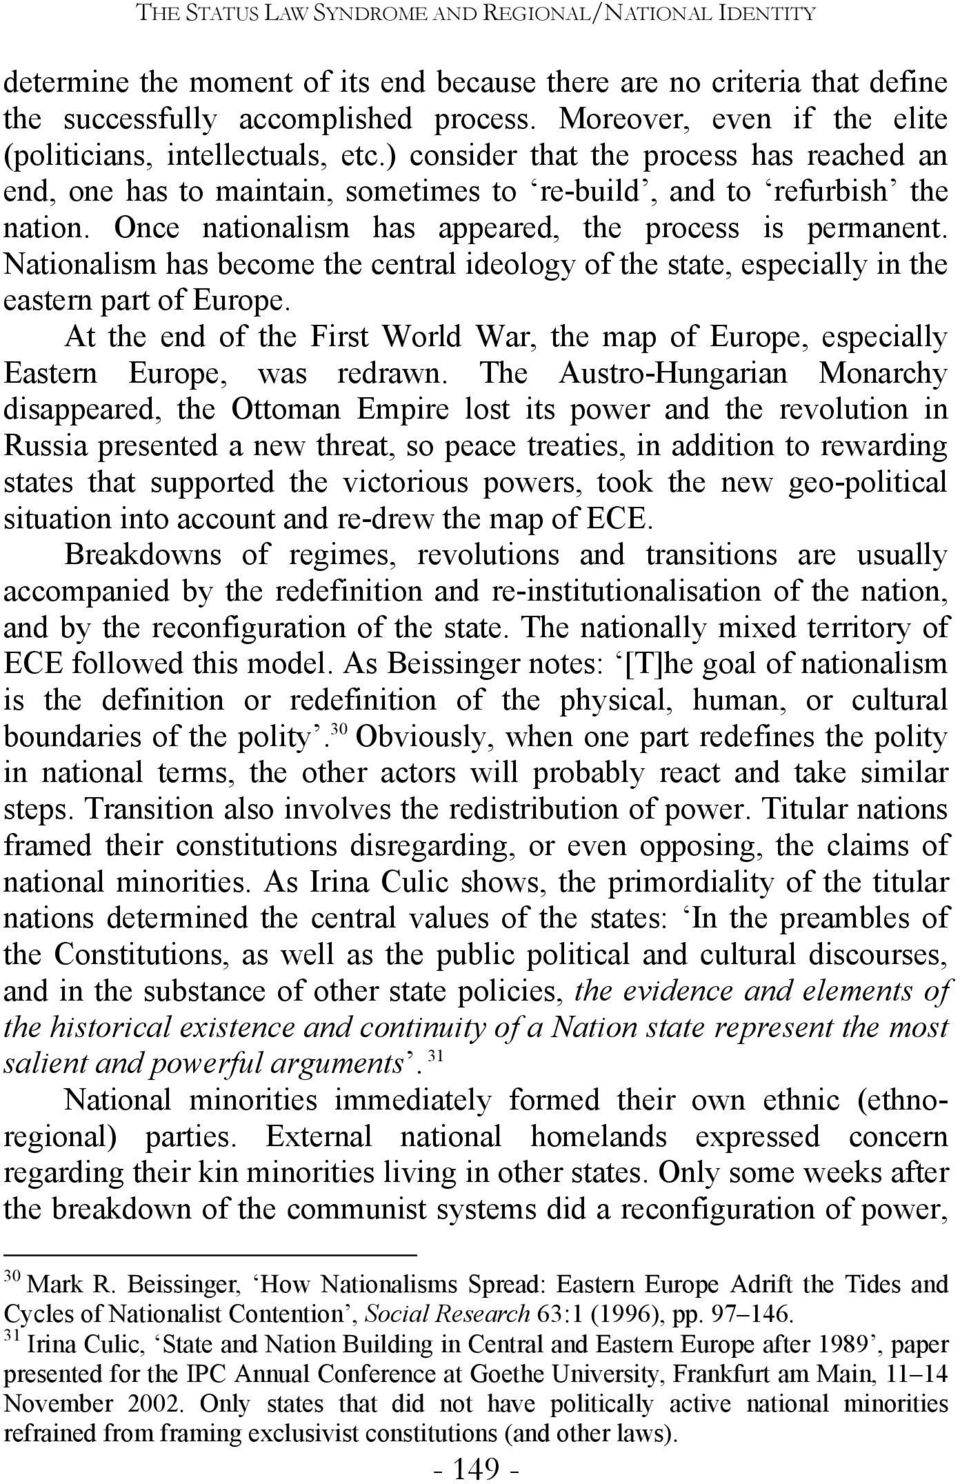 Once nationalism has appeared, the process is permanent. Nationalism has become the central ideology of the state, especially in the eastern part of Europe.